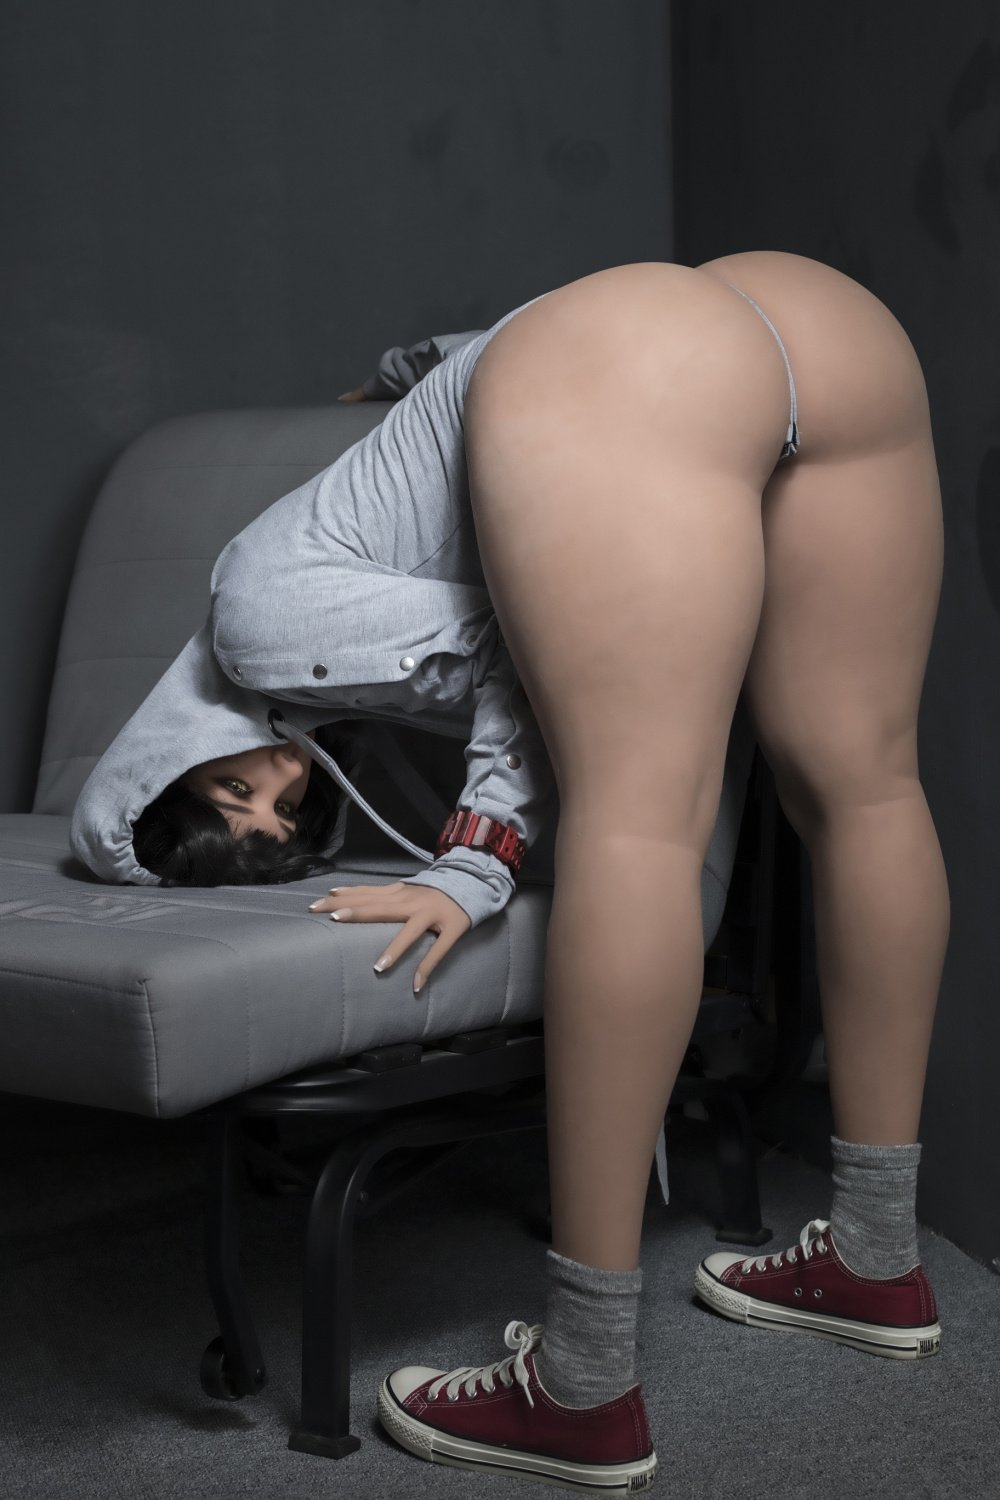 sex doll bent over couch